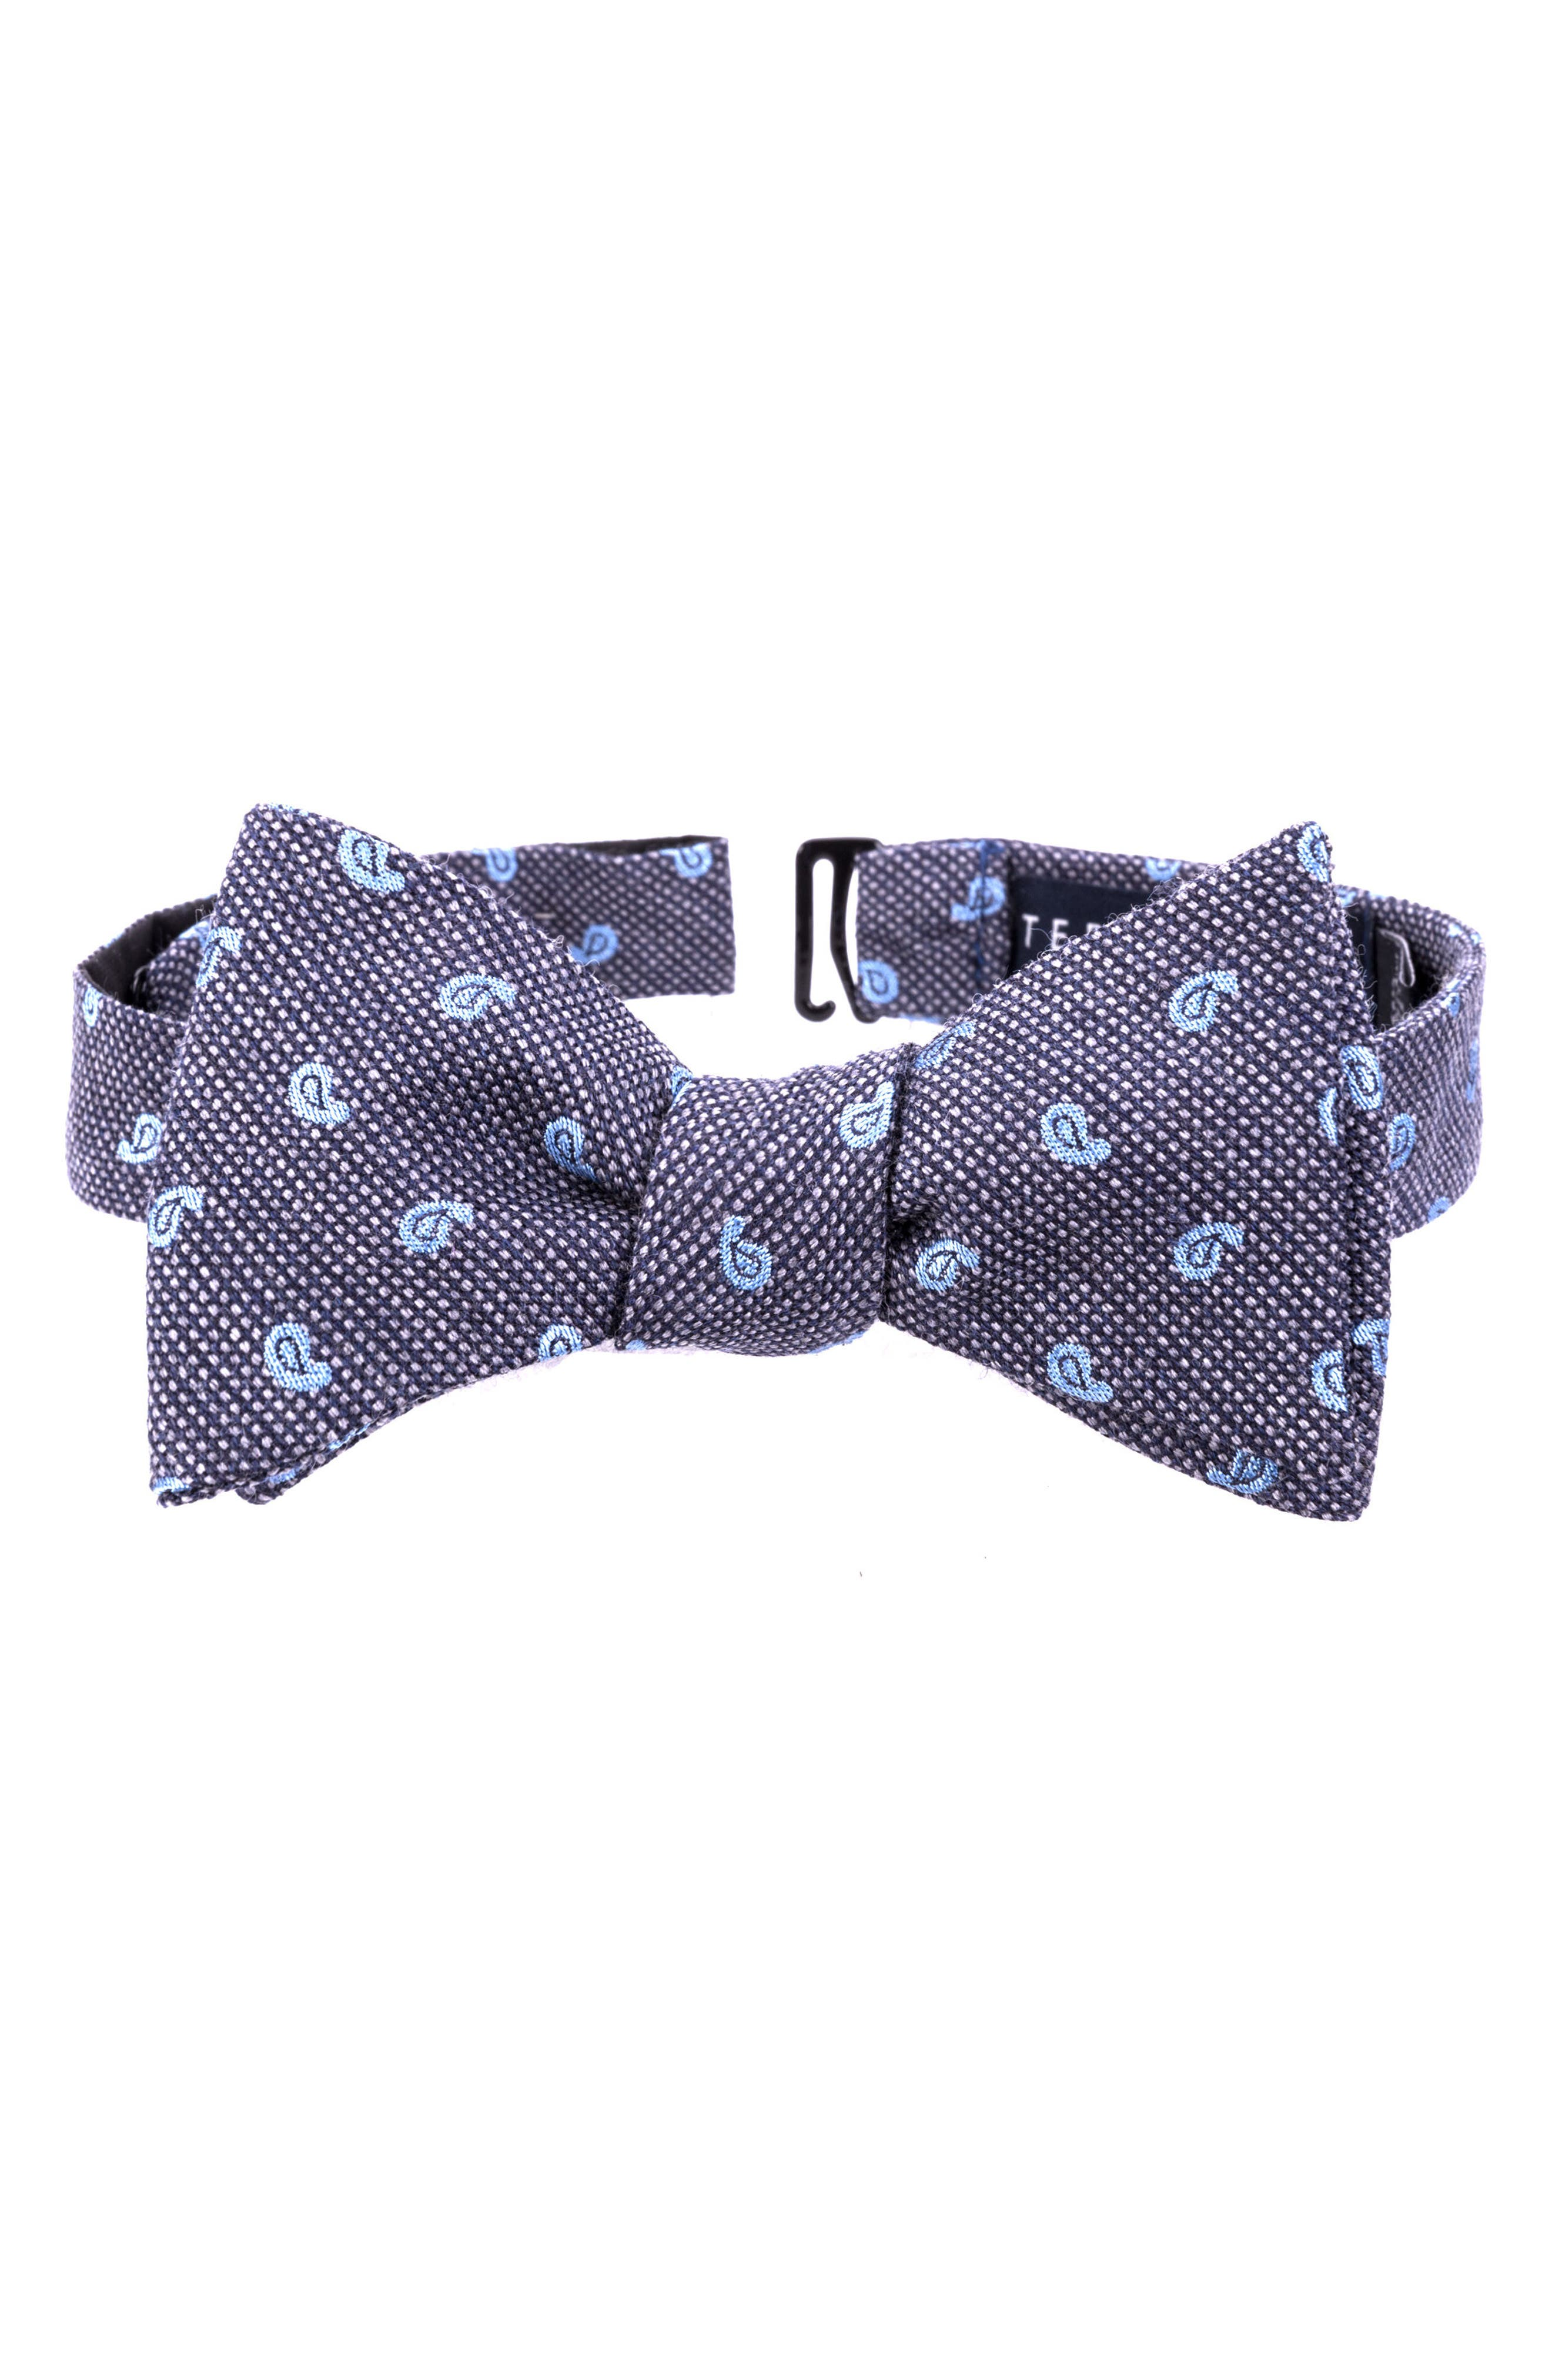 Paisley Silk & Wool Bow Tie,                             Main thumbnail 1, color,                             020